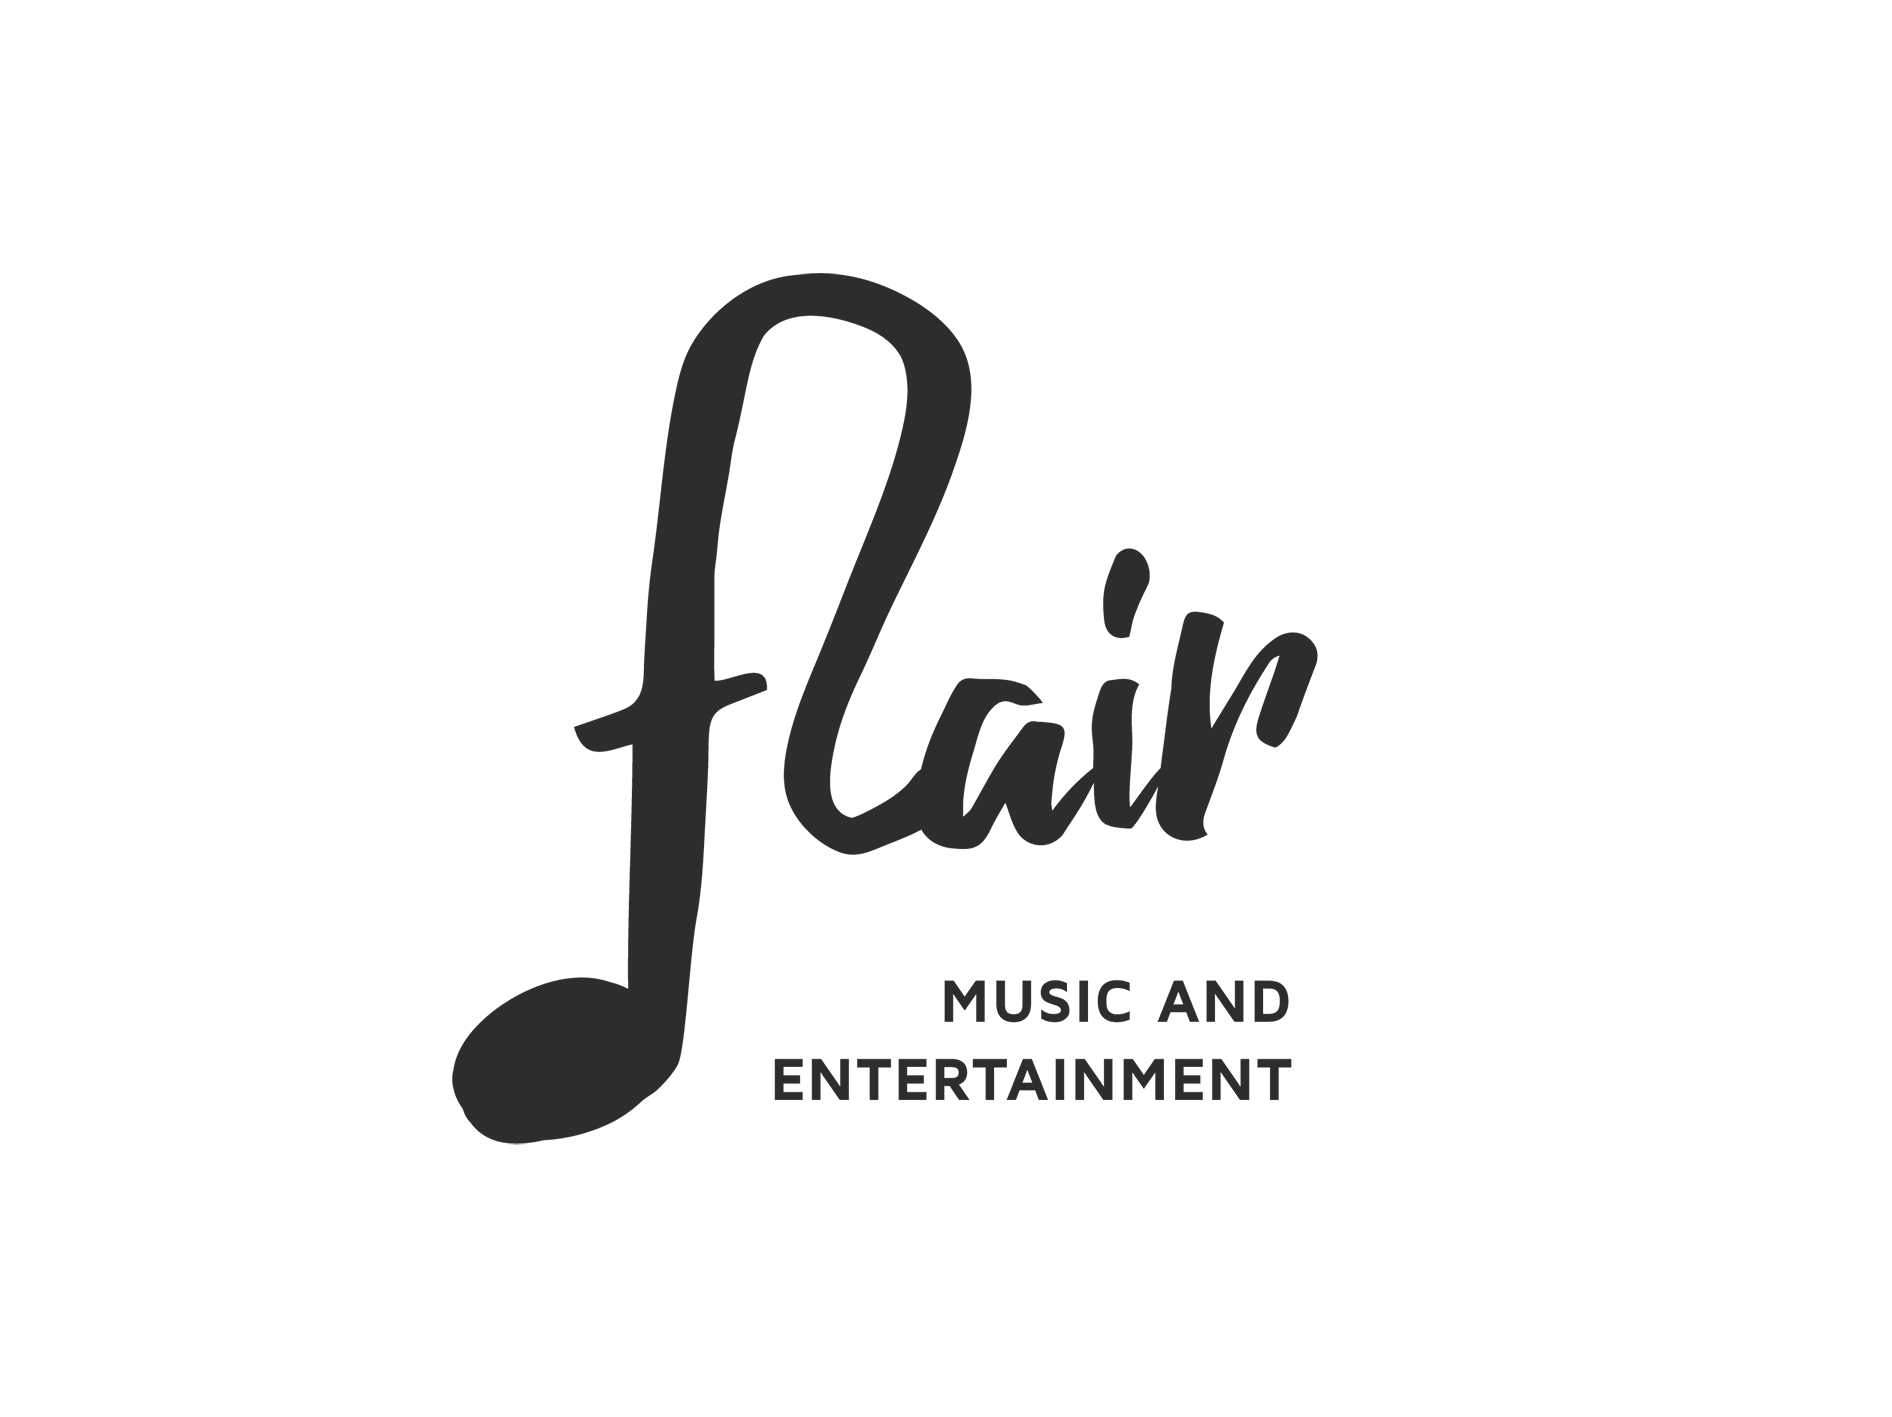 LOGO FLAIR MUSIC & ENTERTAINMENT